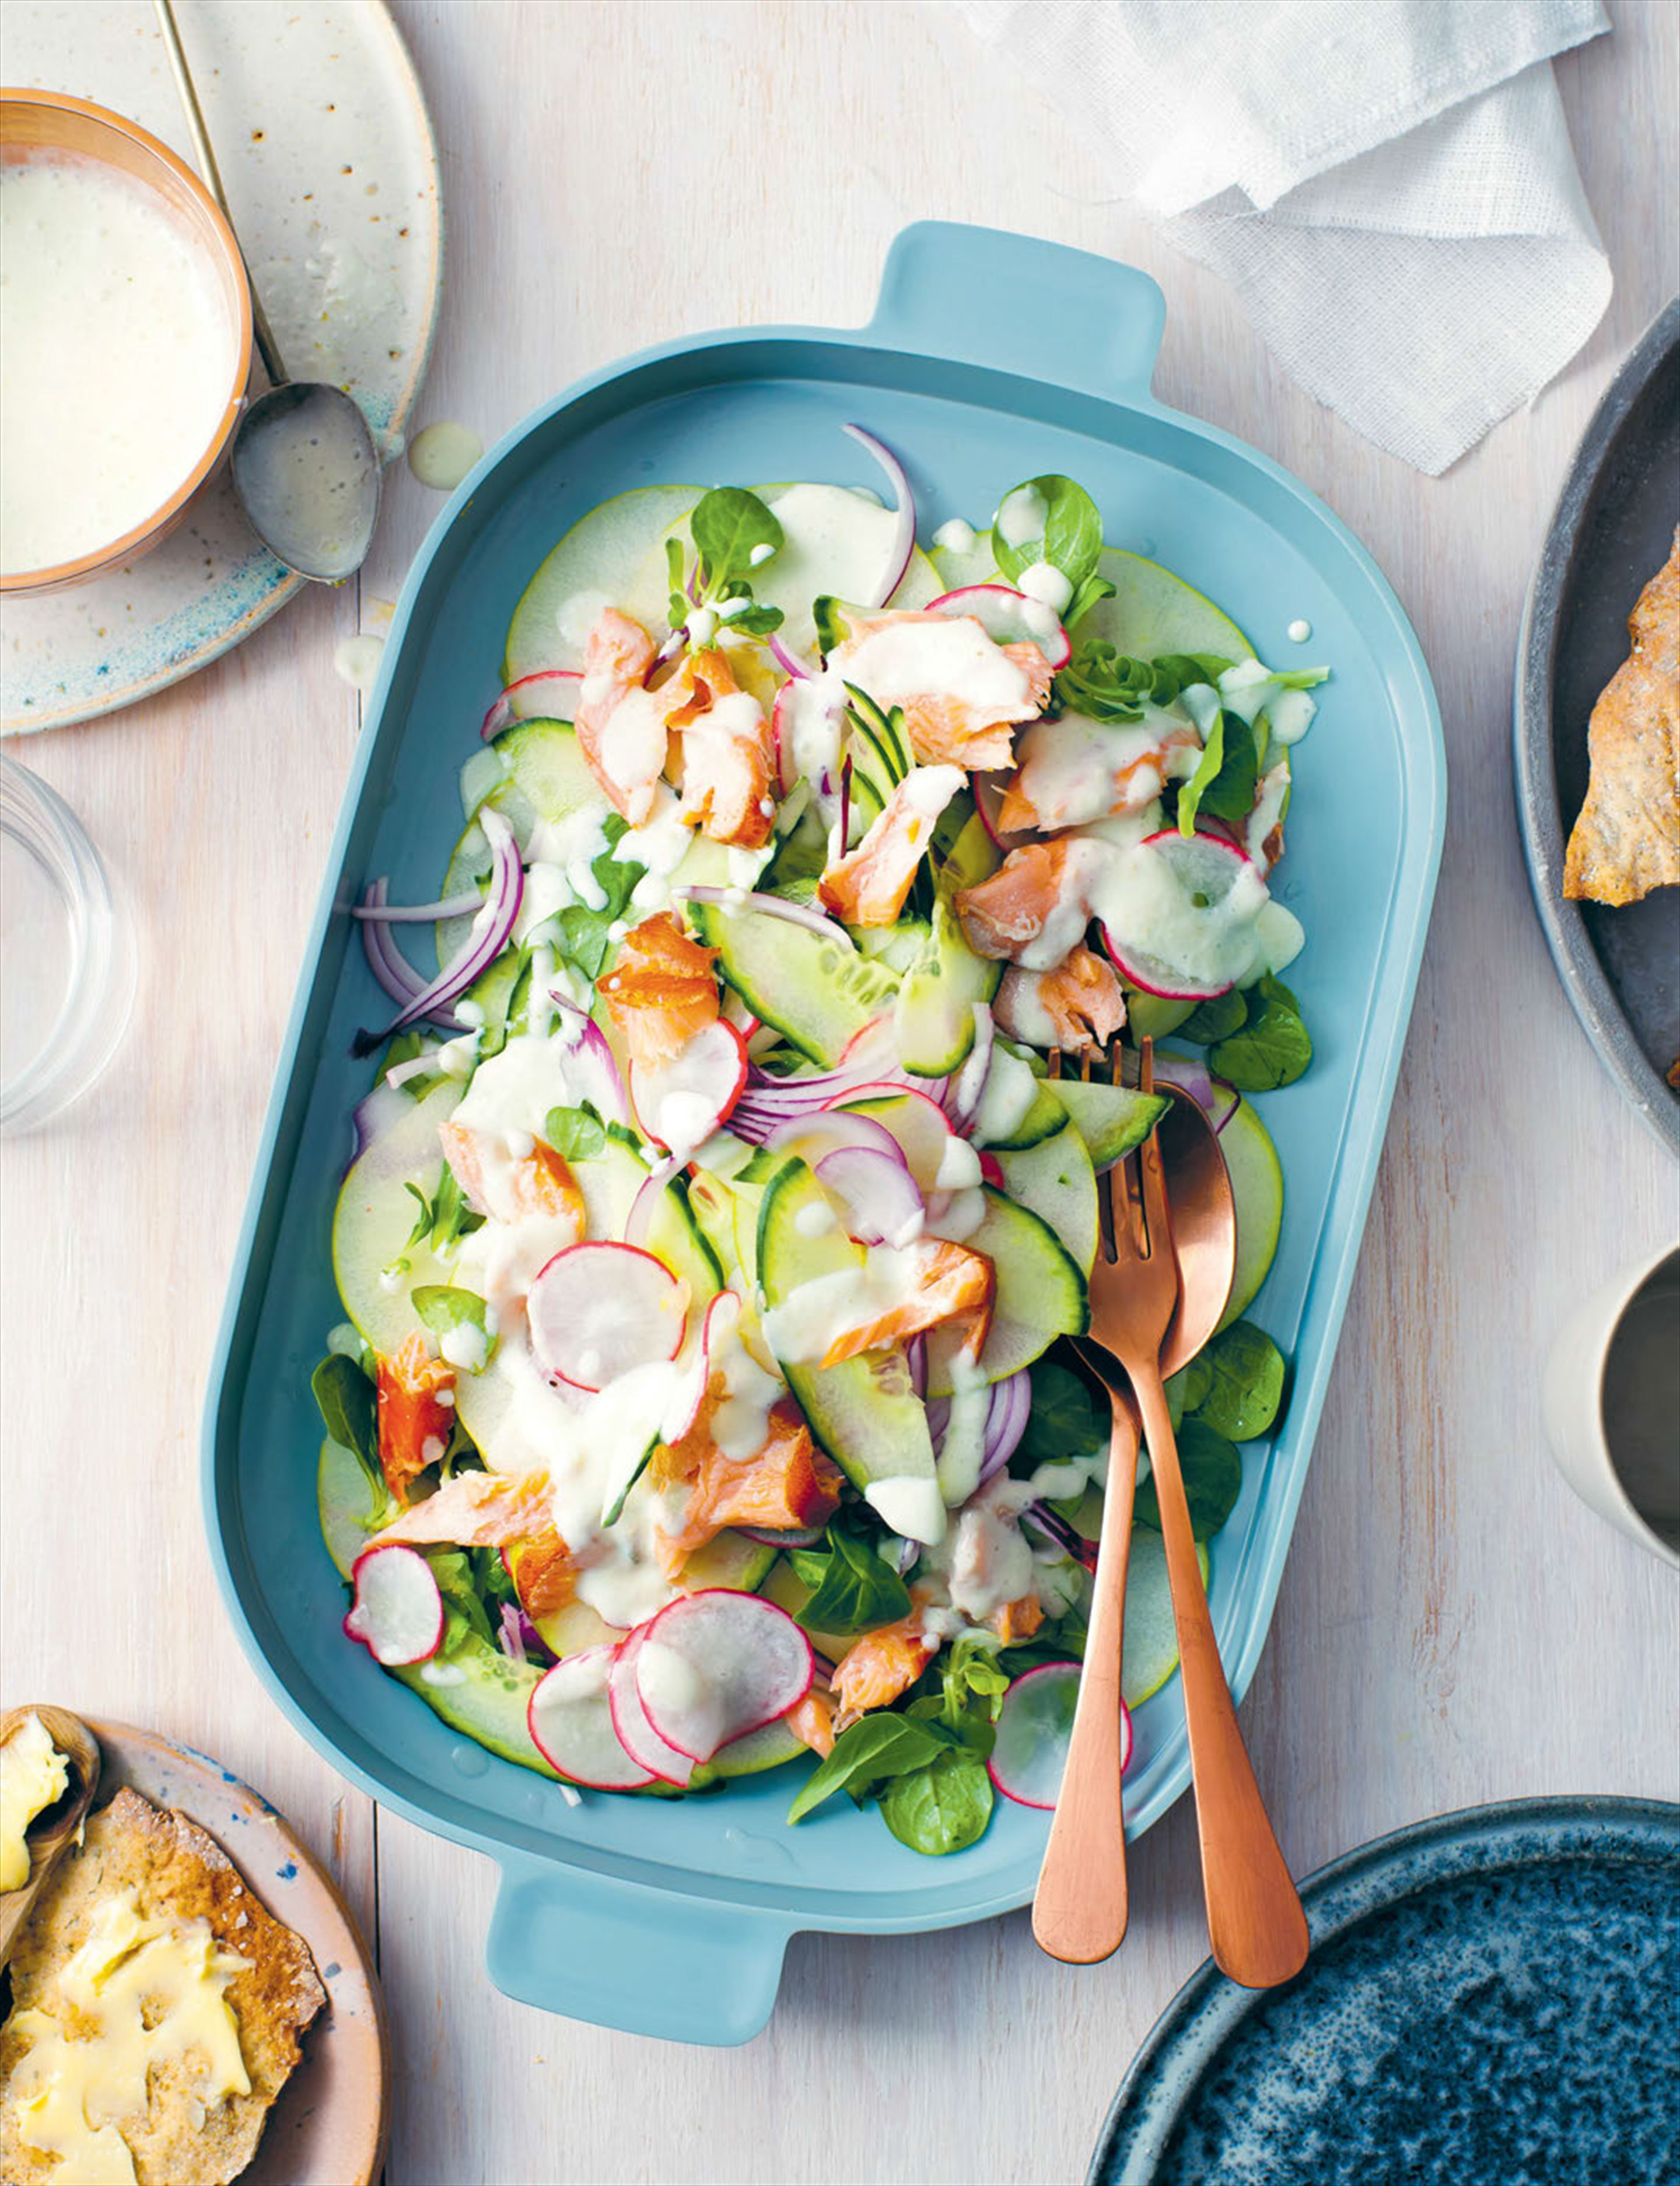 Hot-smoked salmon, roasted garlic & apple salad